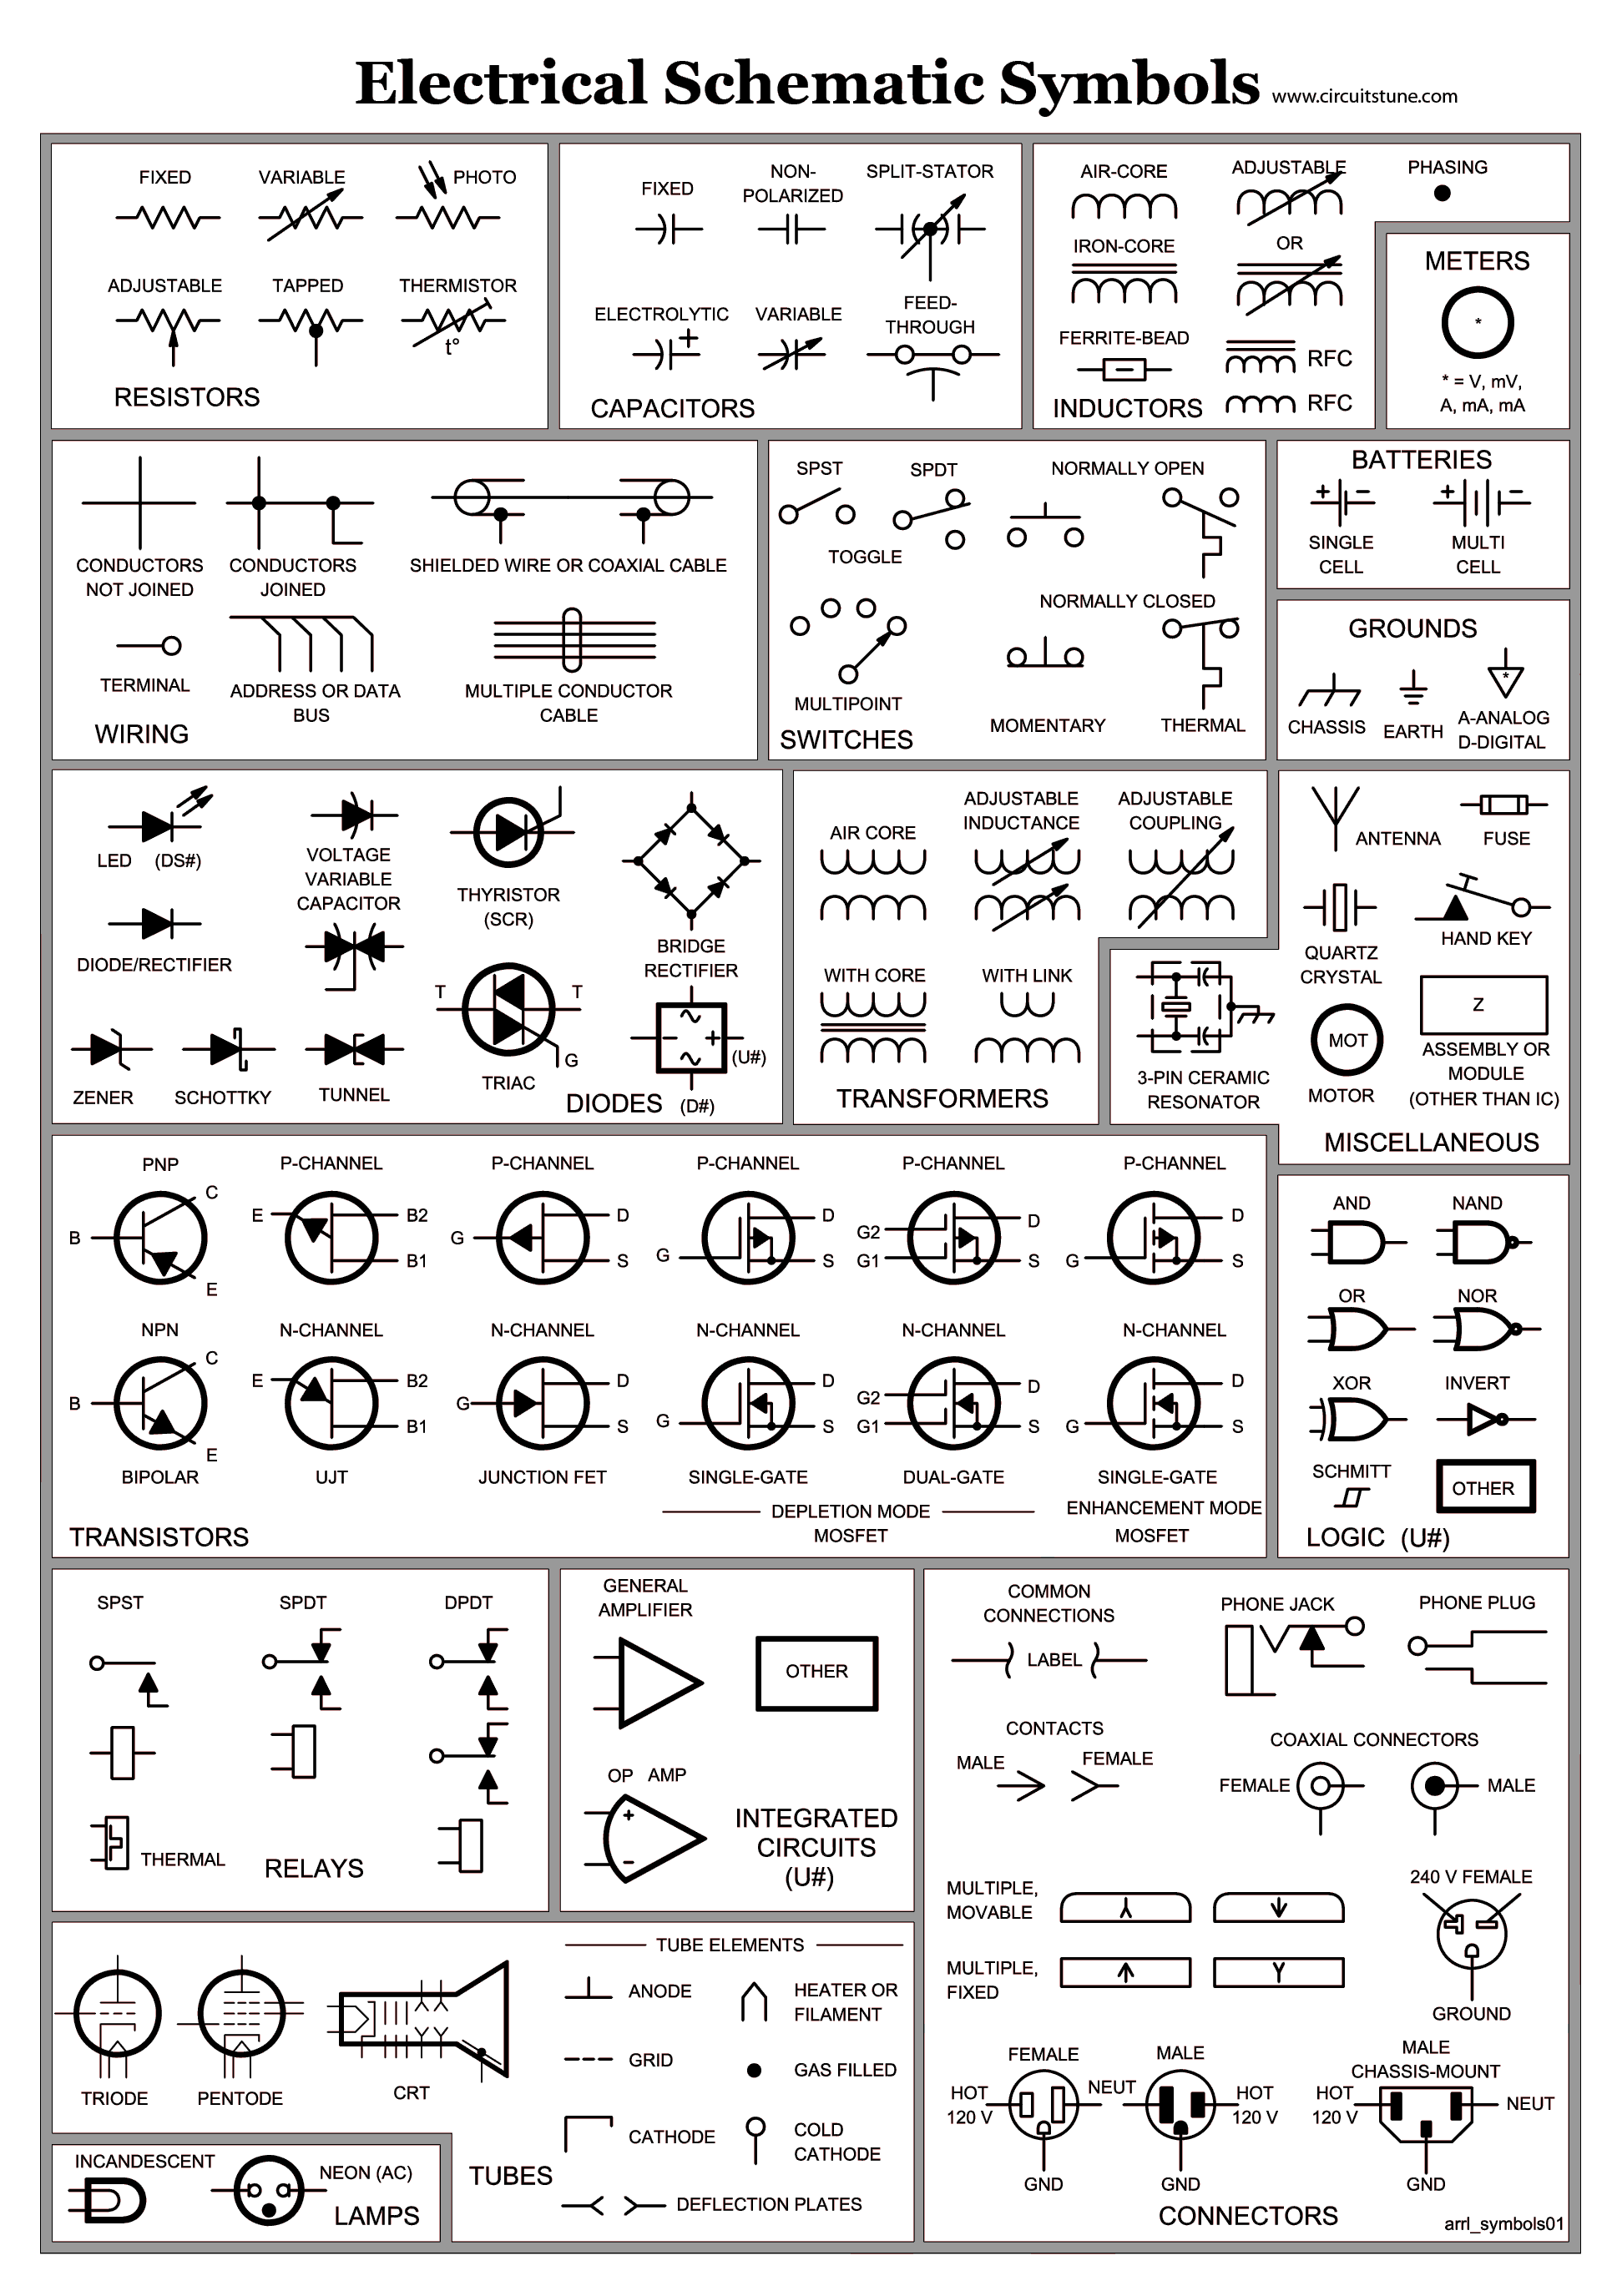 logic diagram symbols wiring diagram detailed boolean logic diagram symbols logic diagram symbols [ 1937 x 2751 Pixel ]